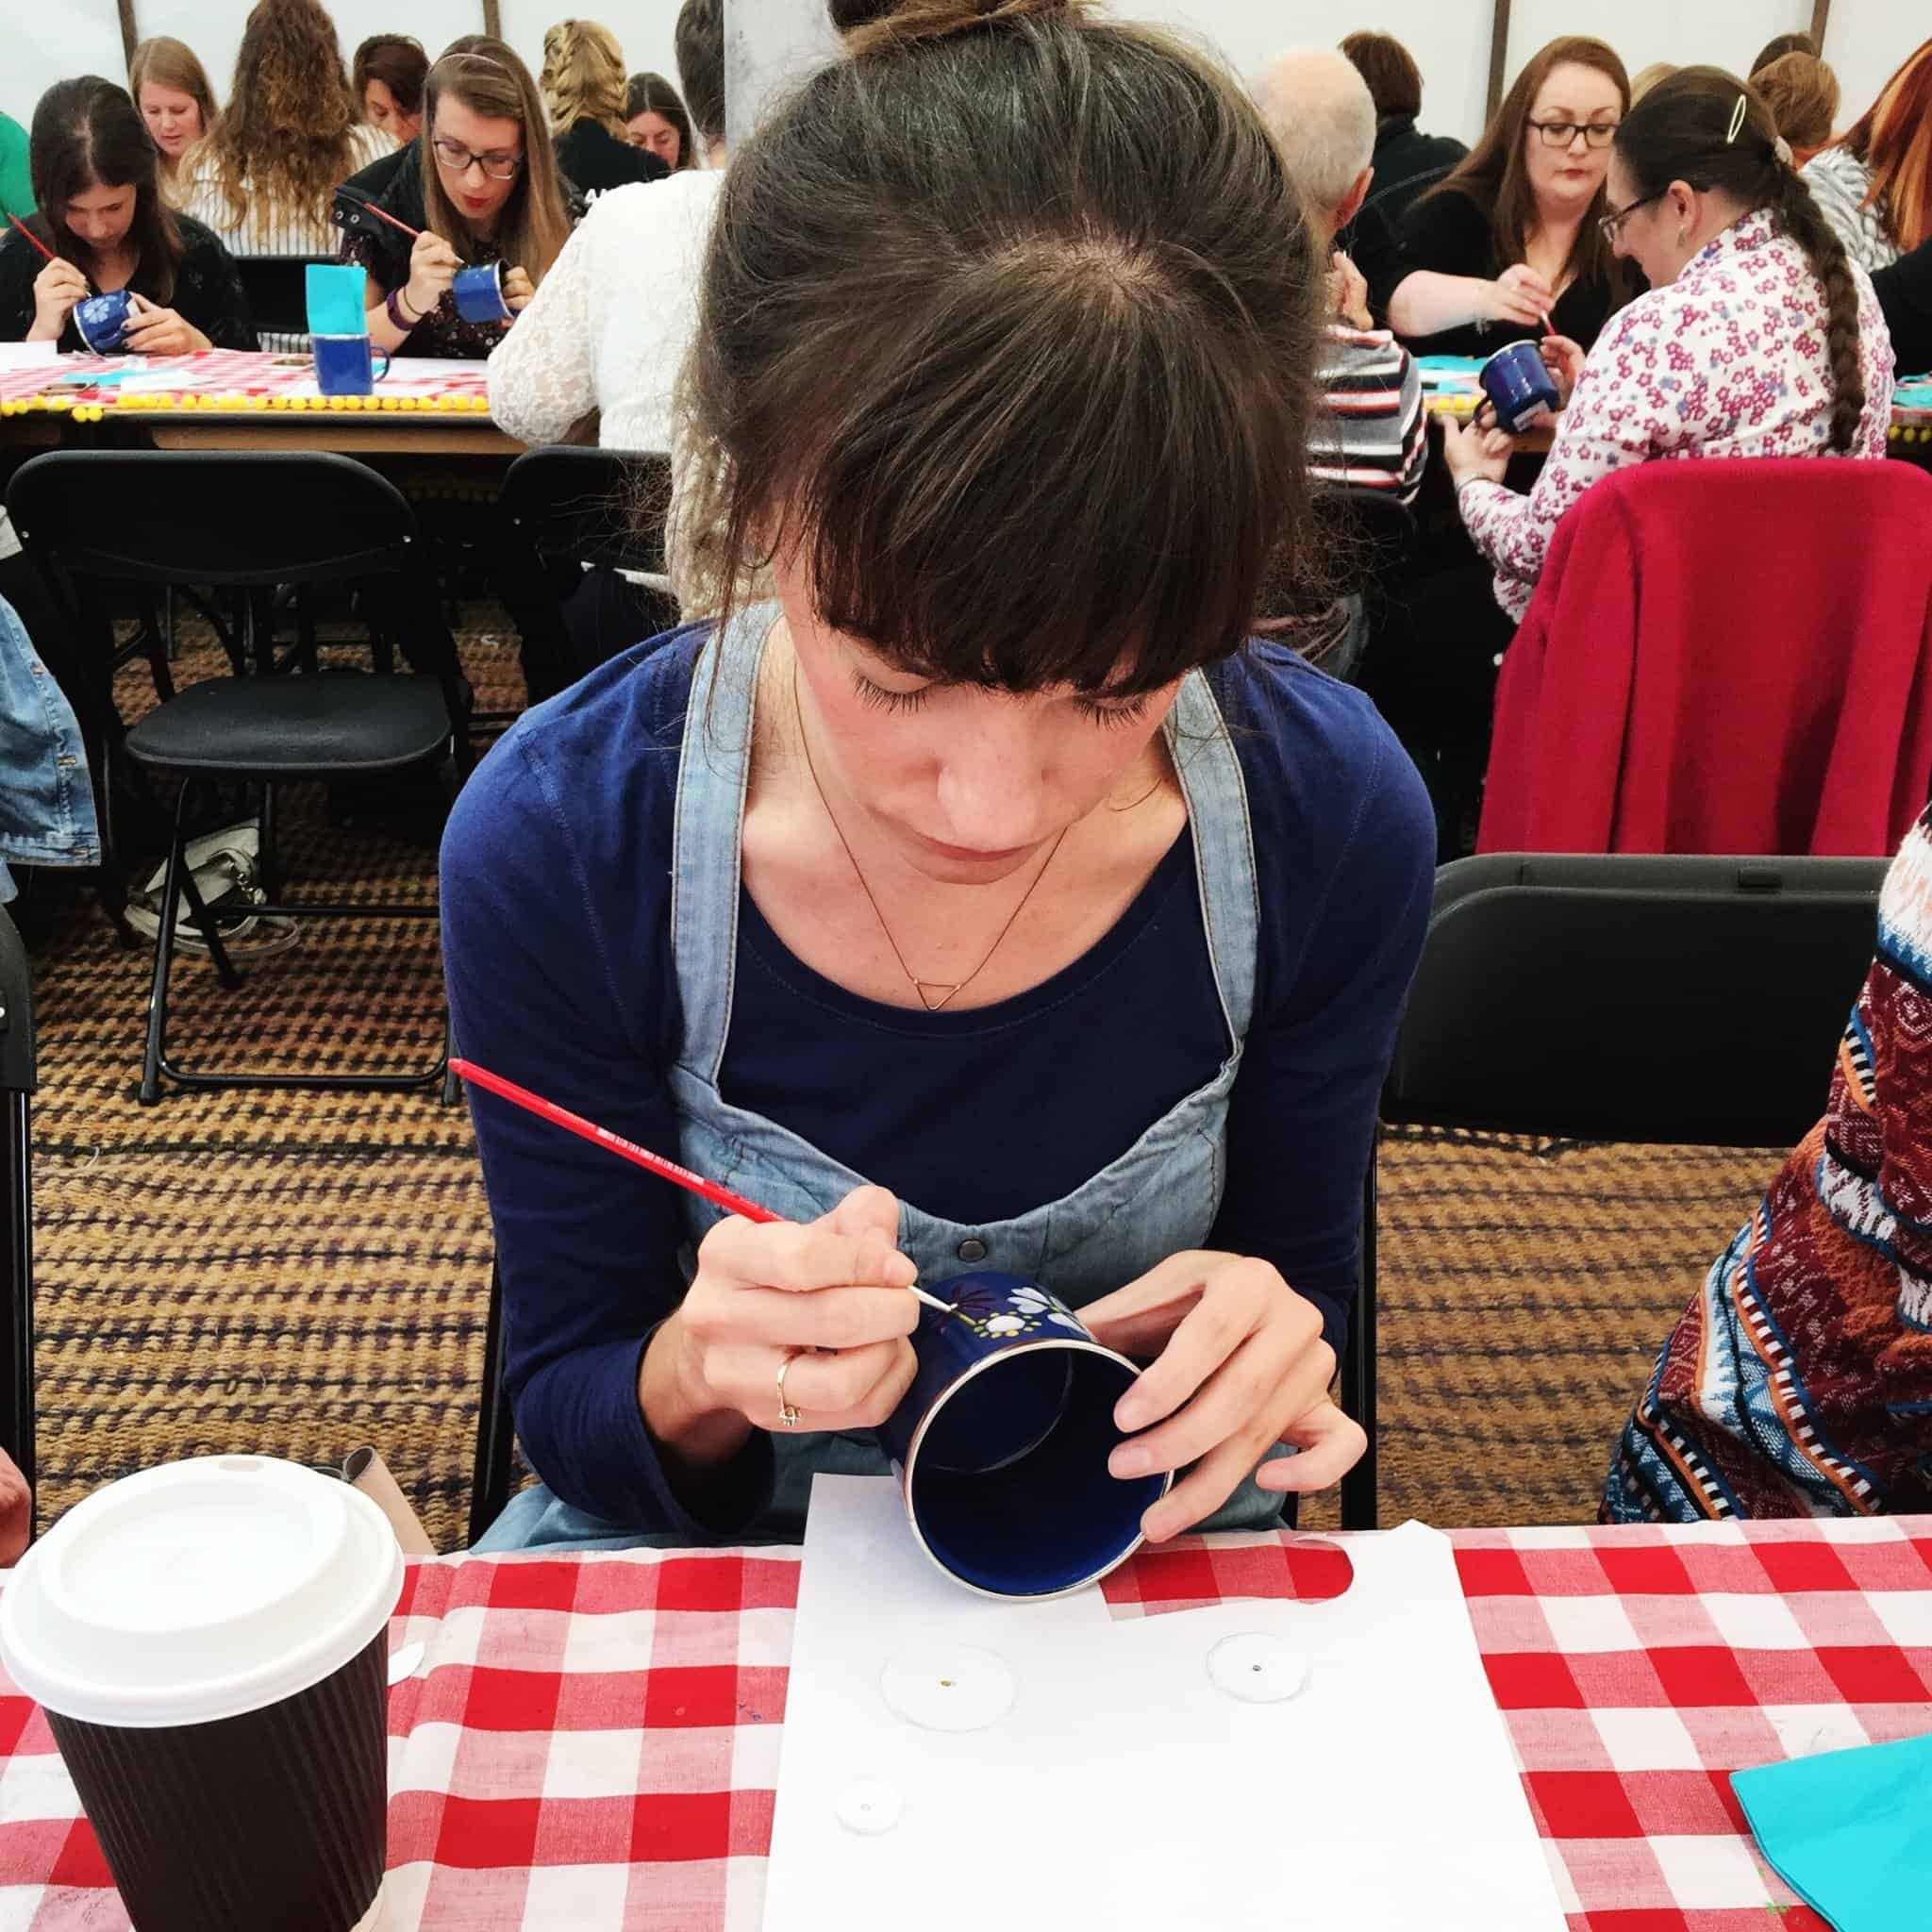 Debbie painting a mug at The Lovely Drawer workshop at The Handmade Fair